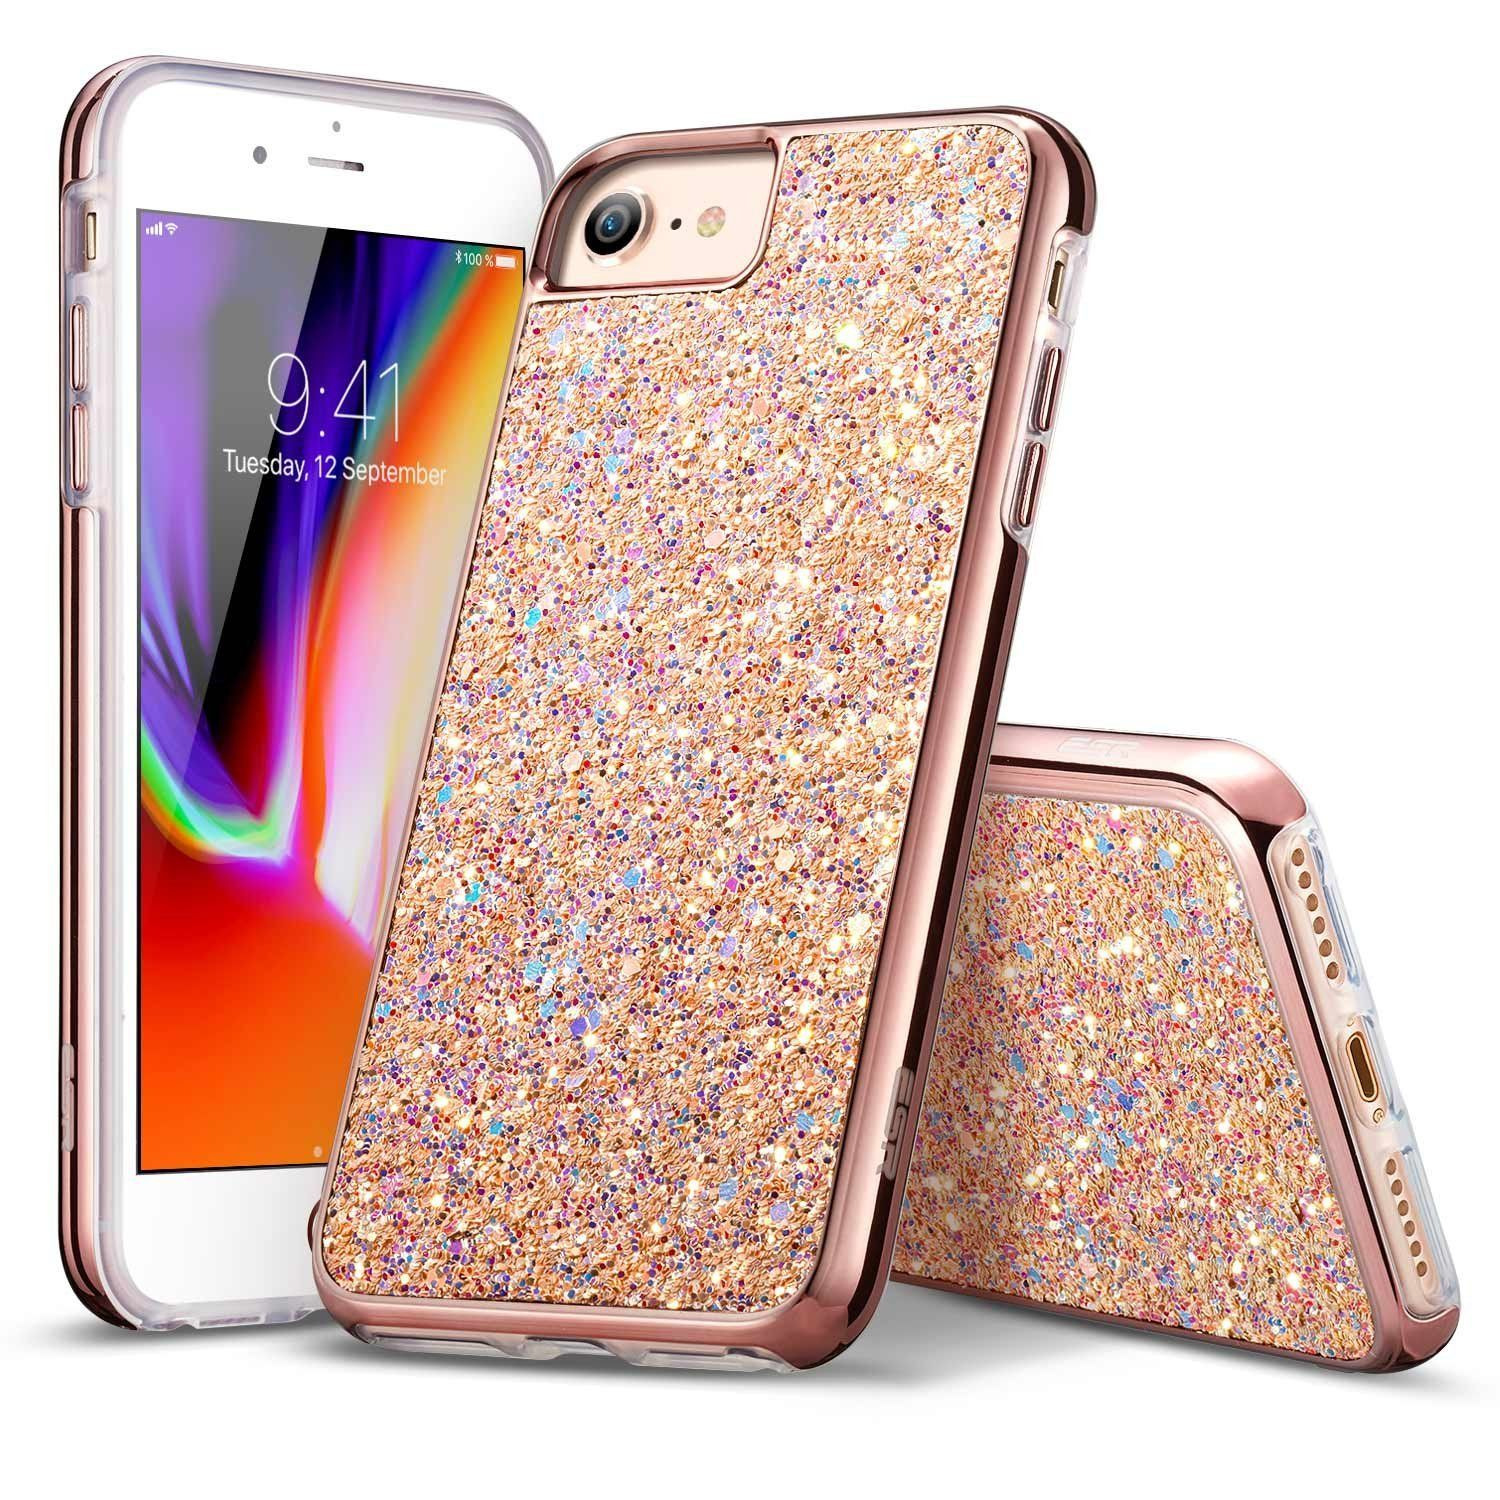 esr iphone 8 case rose gold